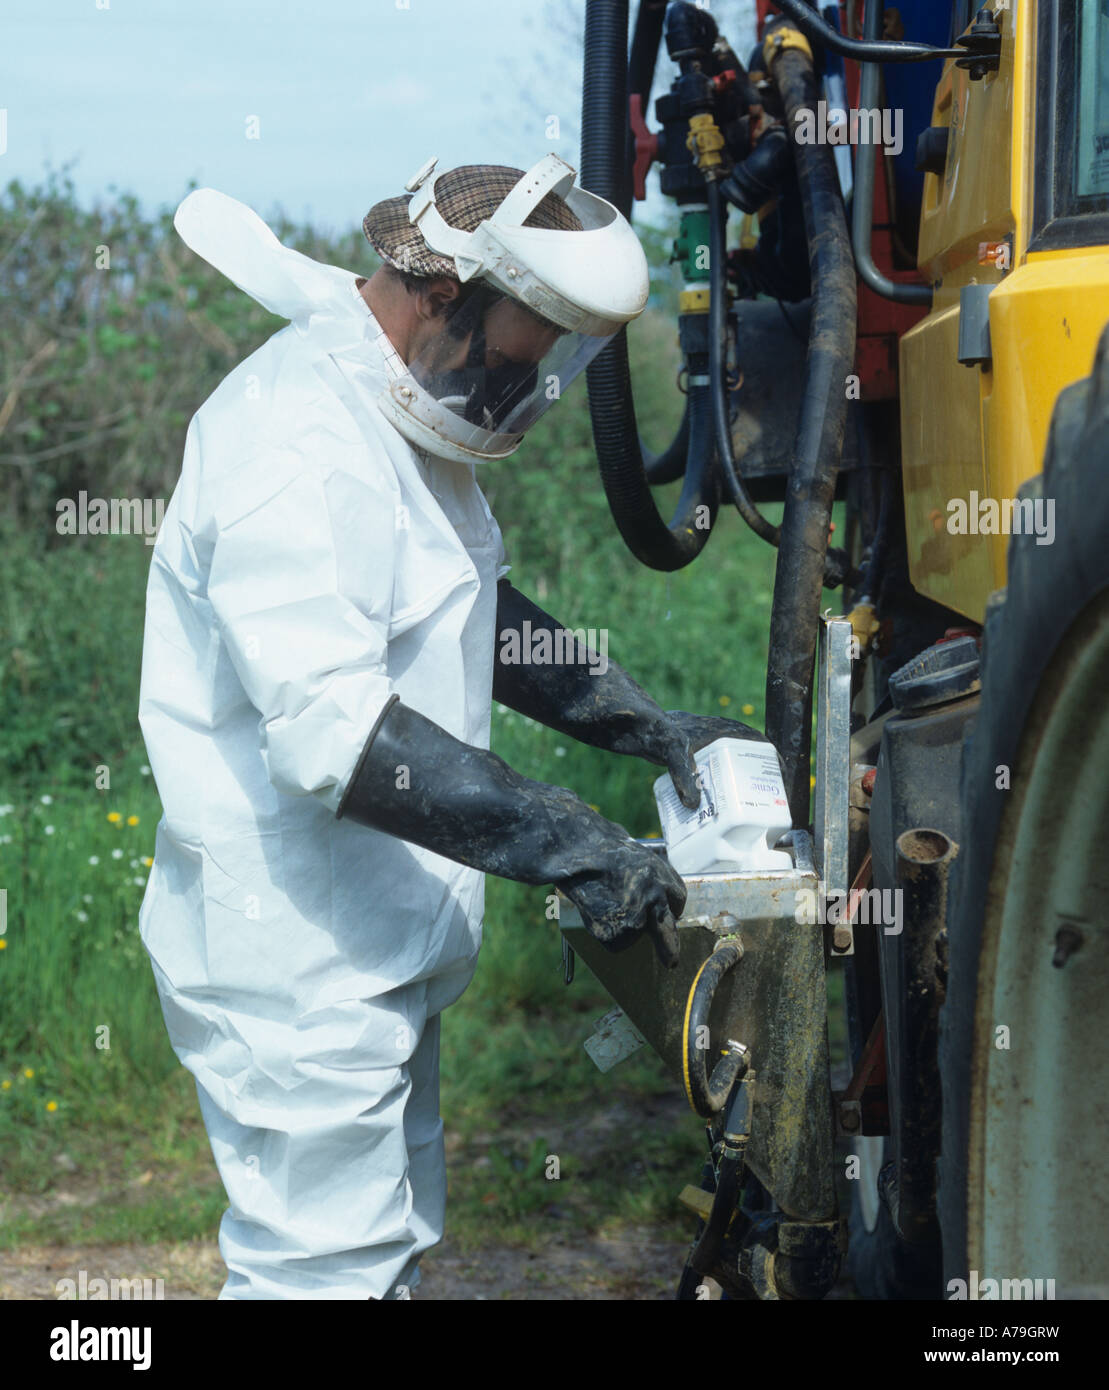 Tractor driver in full protective clothing adding chemical to the spray tank of a crop sprayer - Stock Image